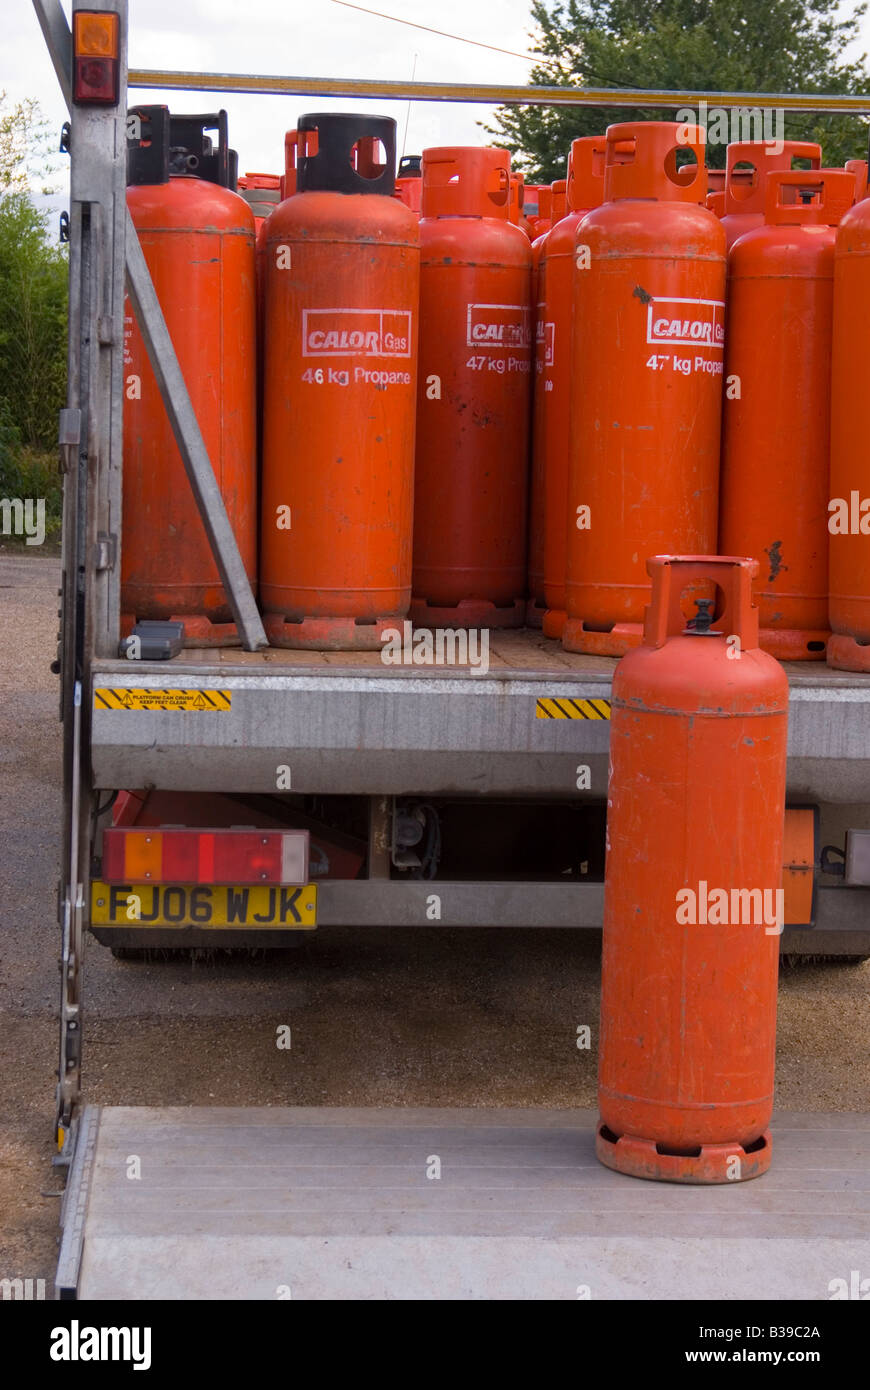 Propane gas cylinders (calor) on the back of a lorry being unloaded - Stock Image